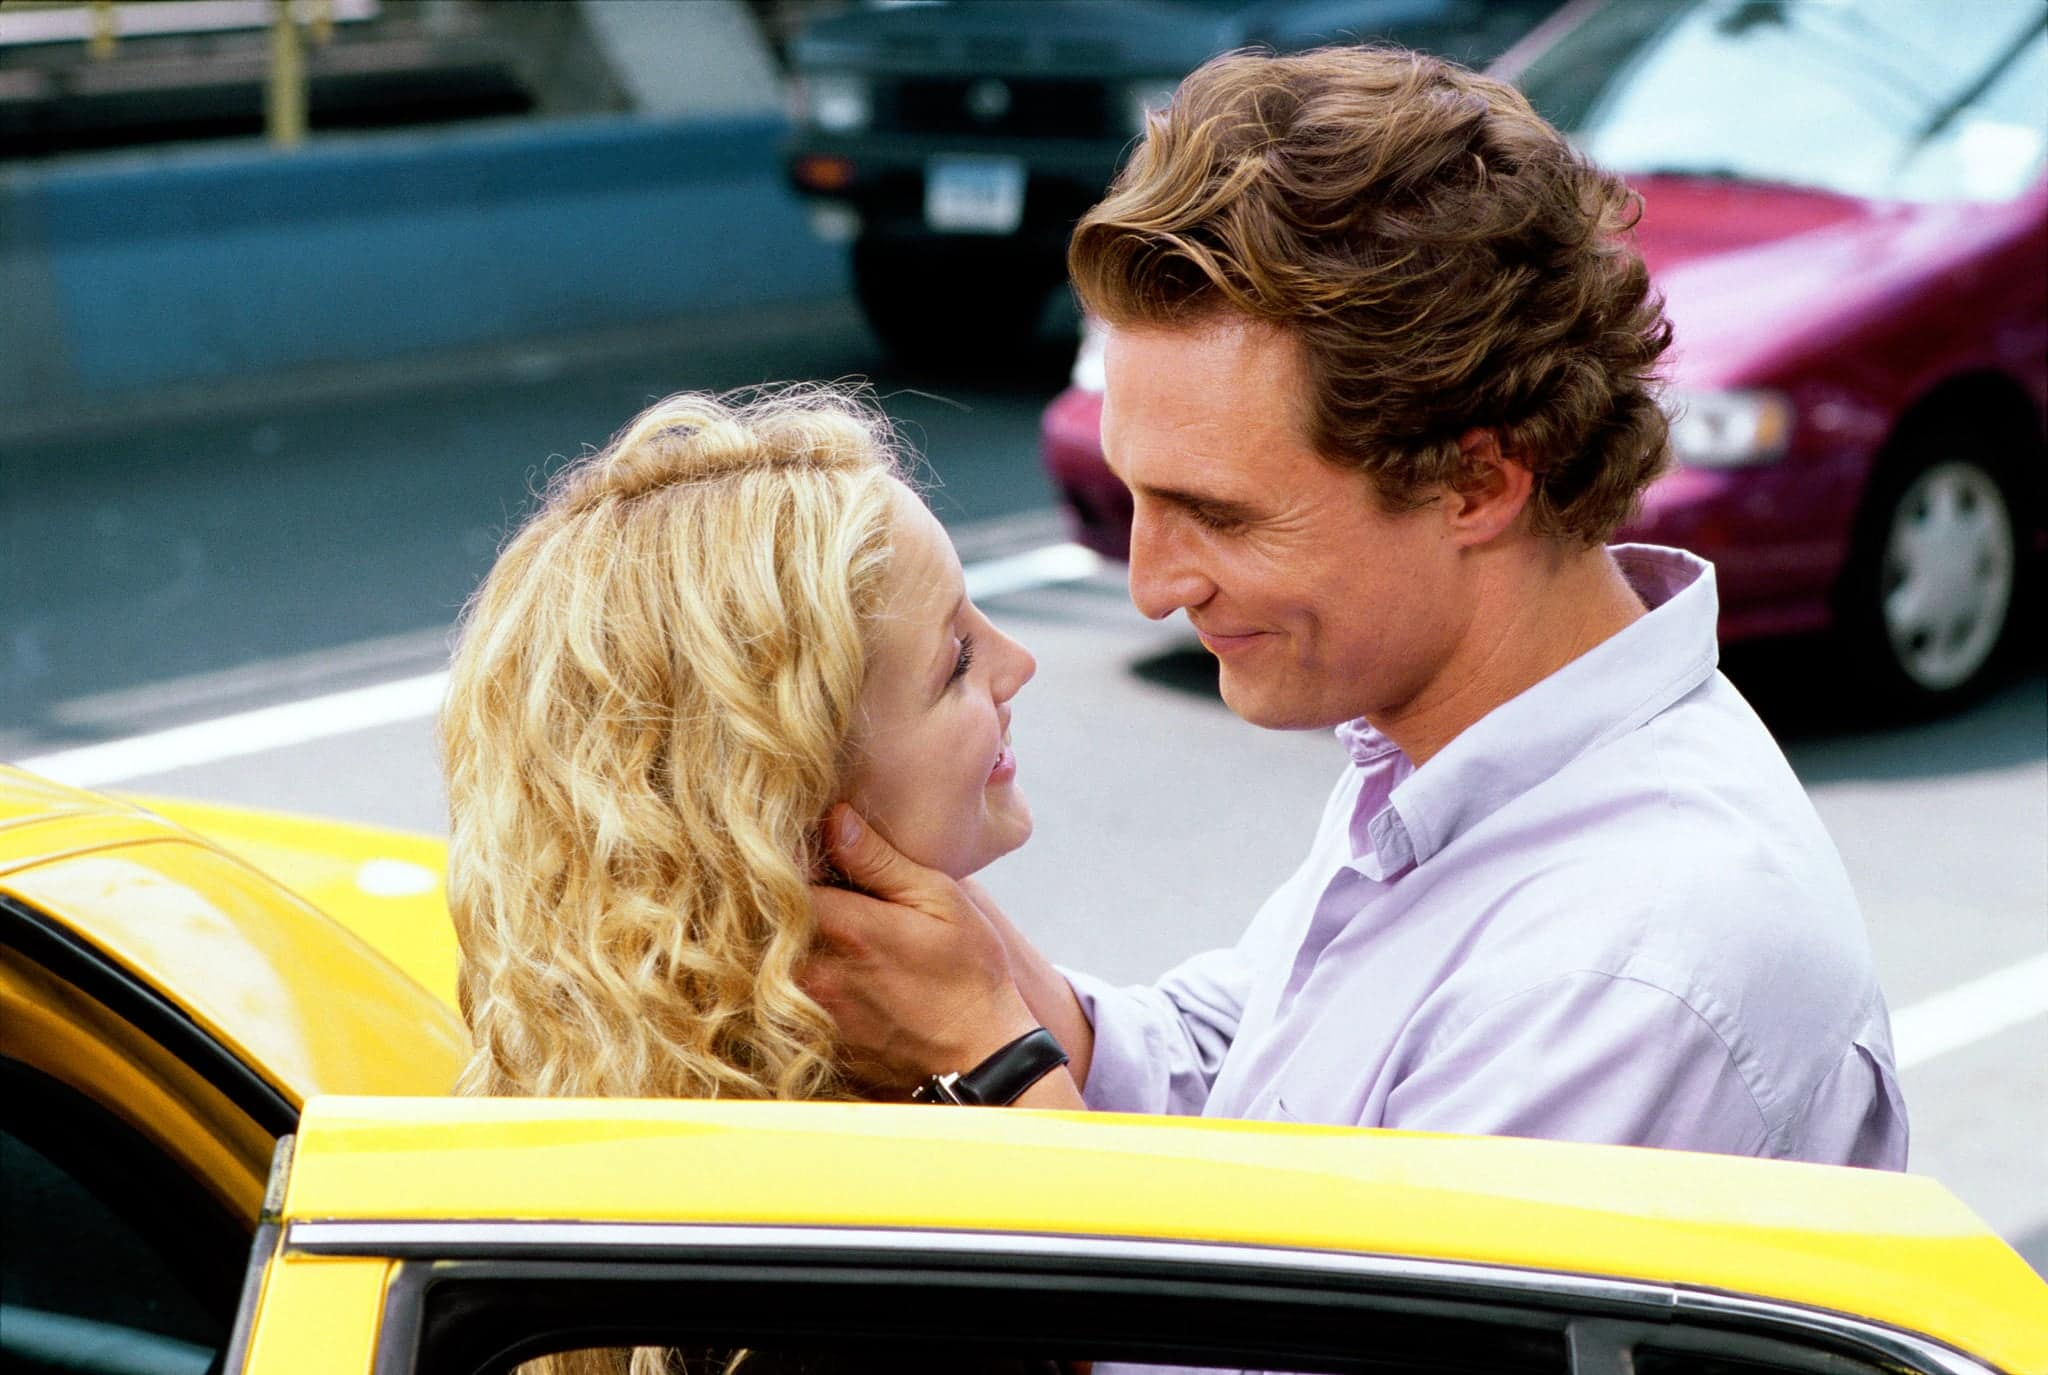 13 Best Rom-Coms Of All Time